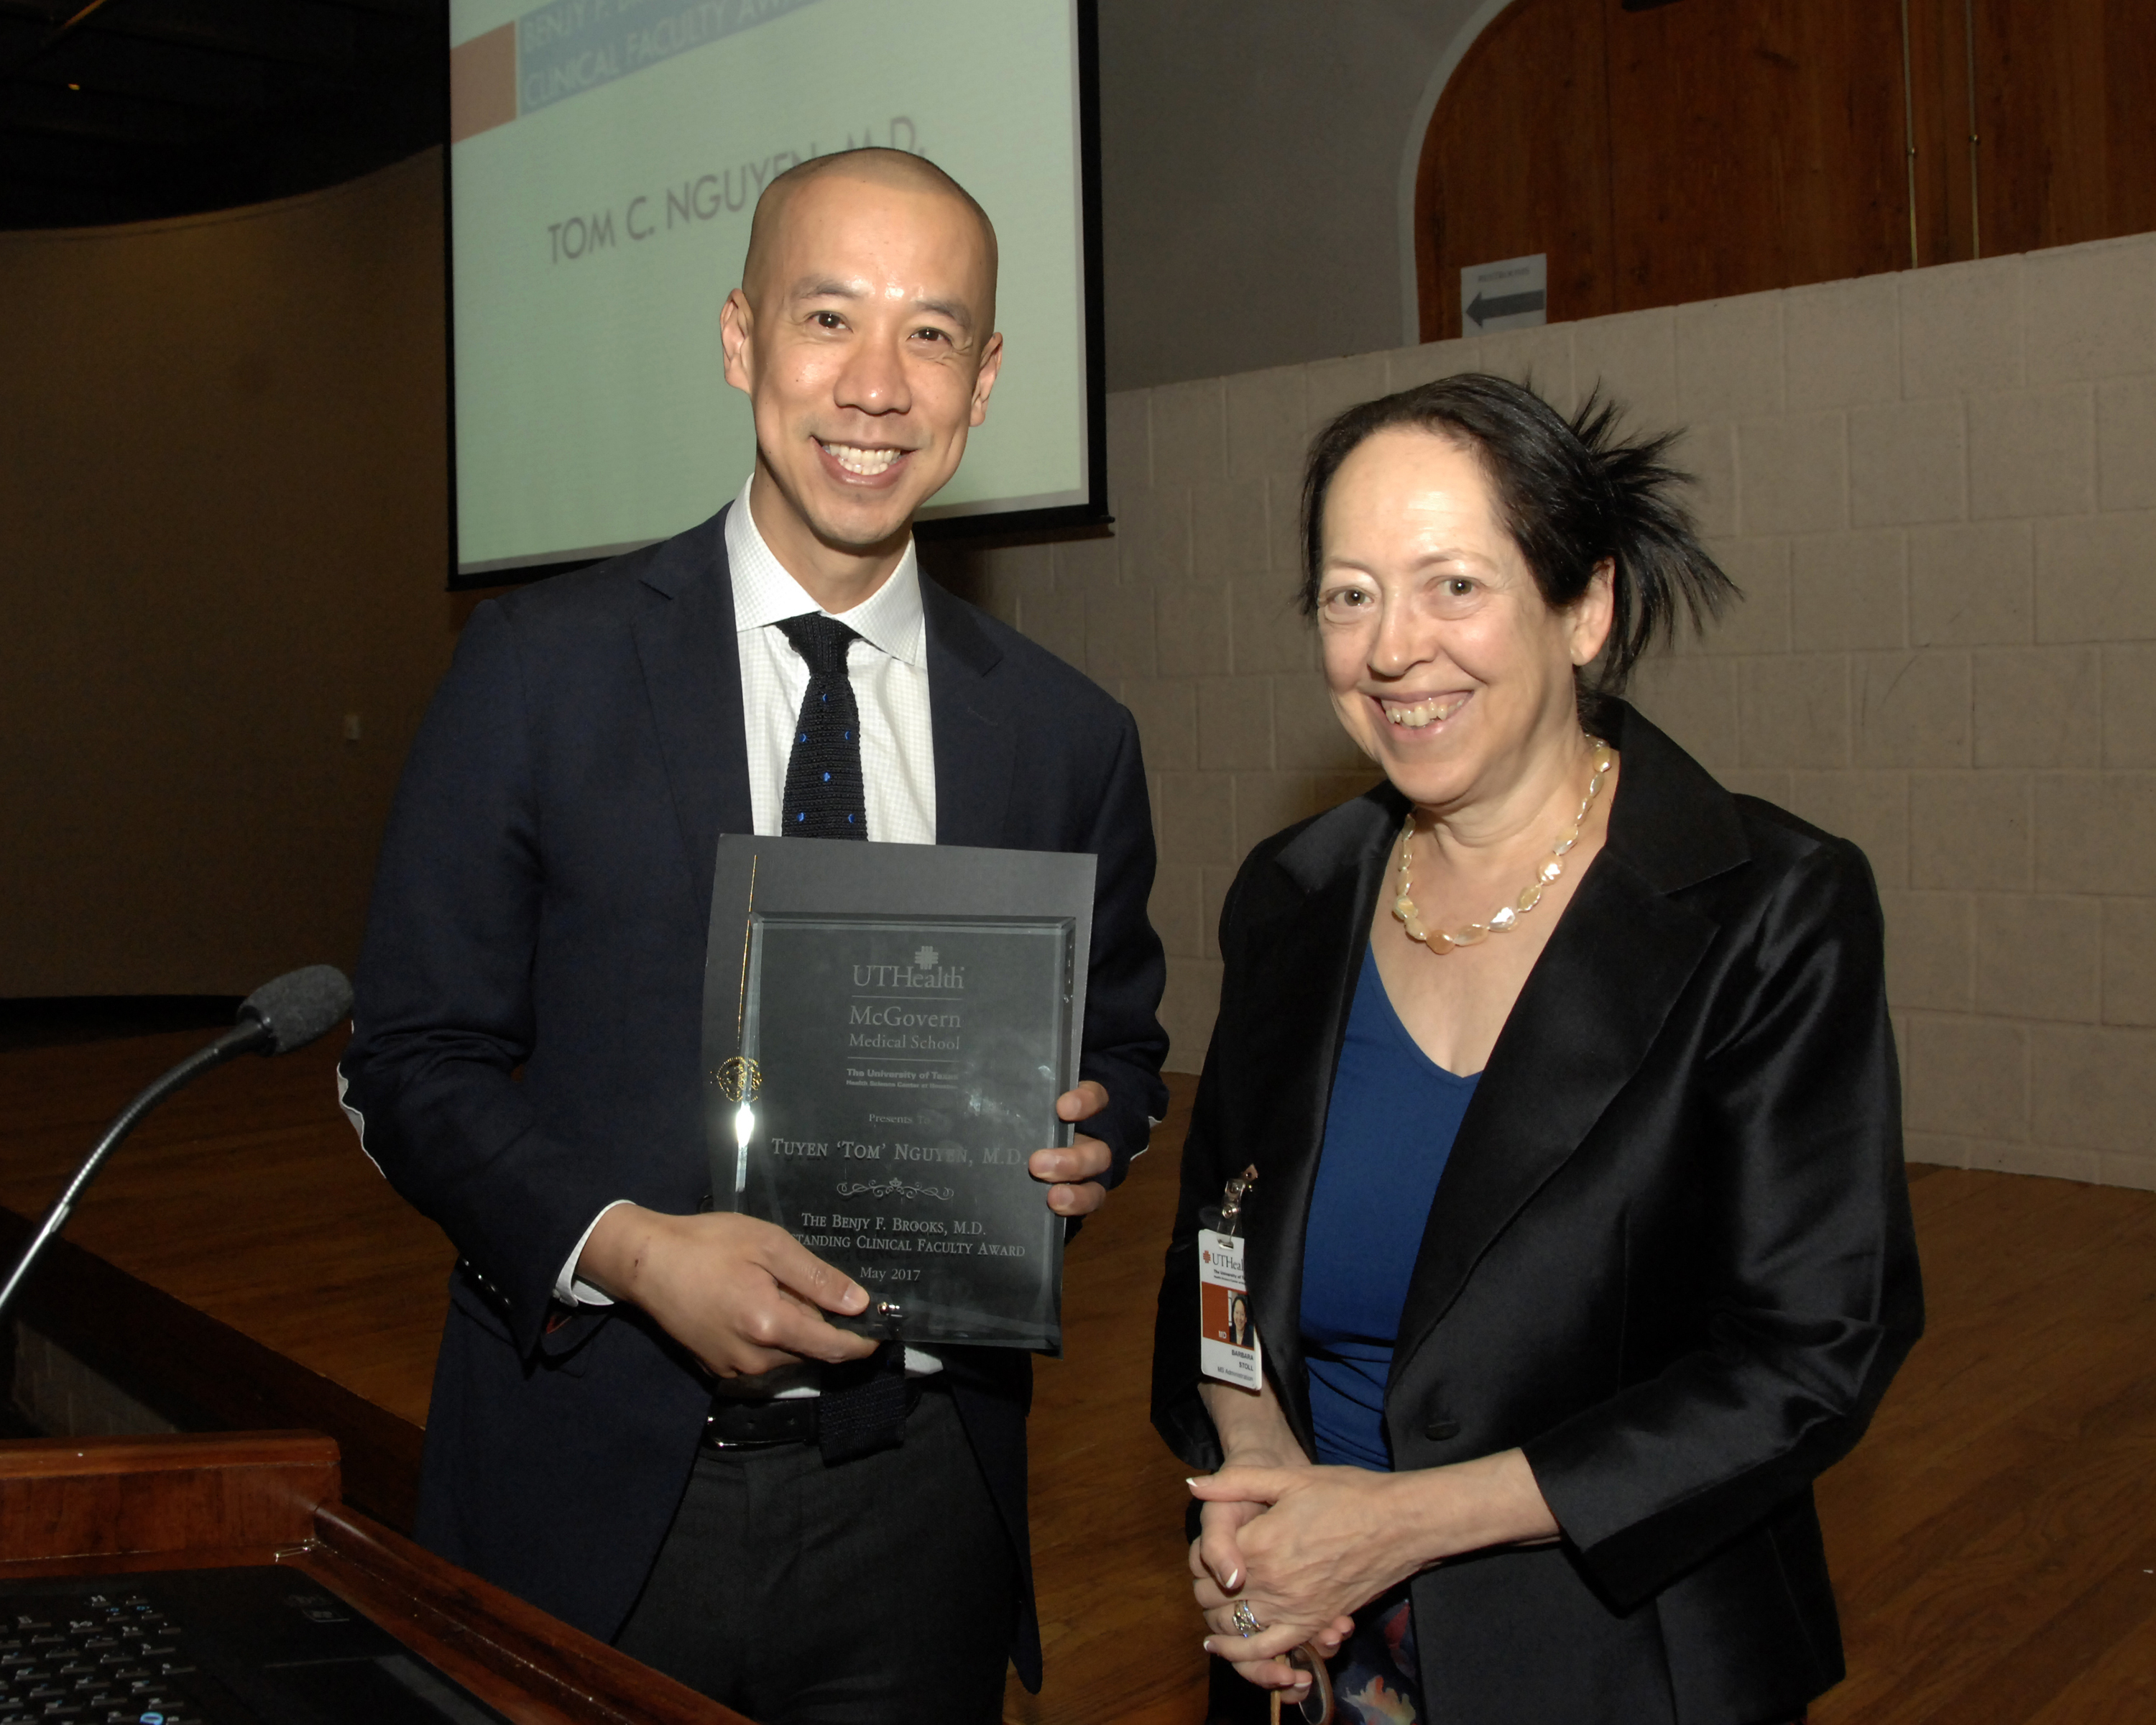 Dr. Tom Nguyen receives the Benjy Brooks award from Dean Stoll.